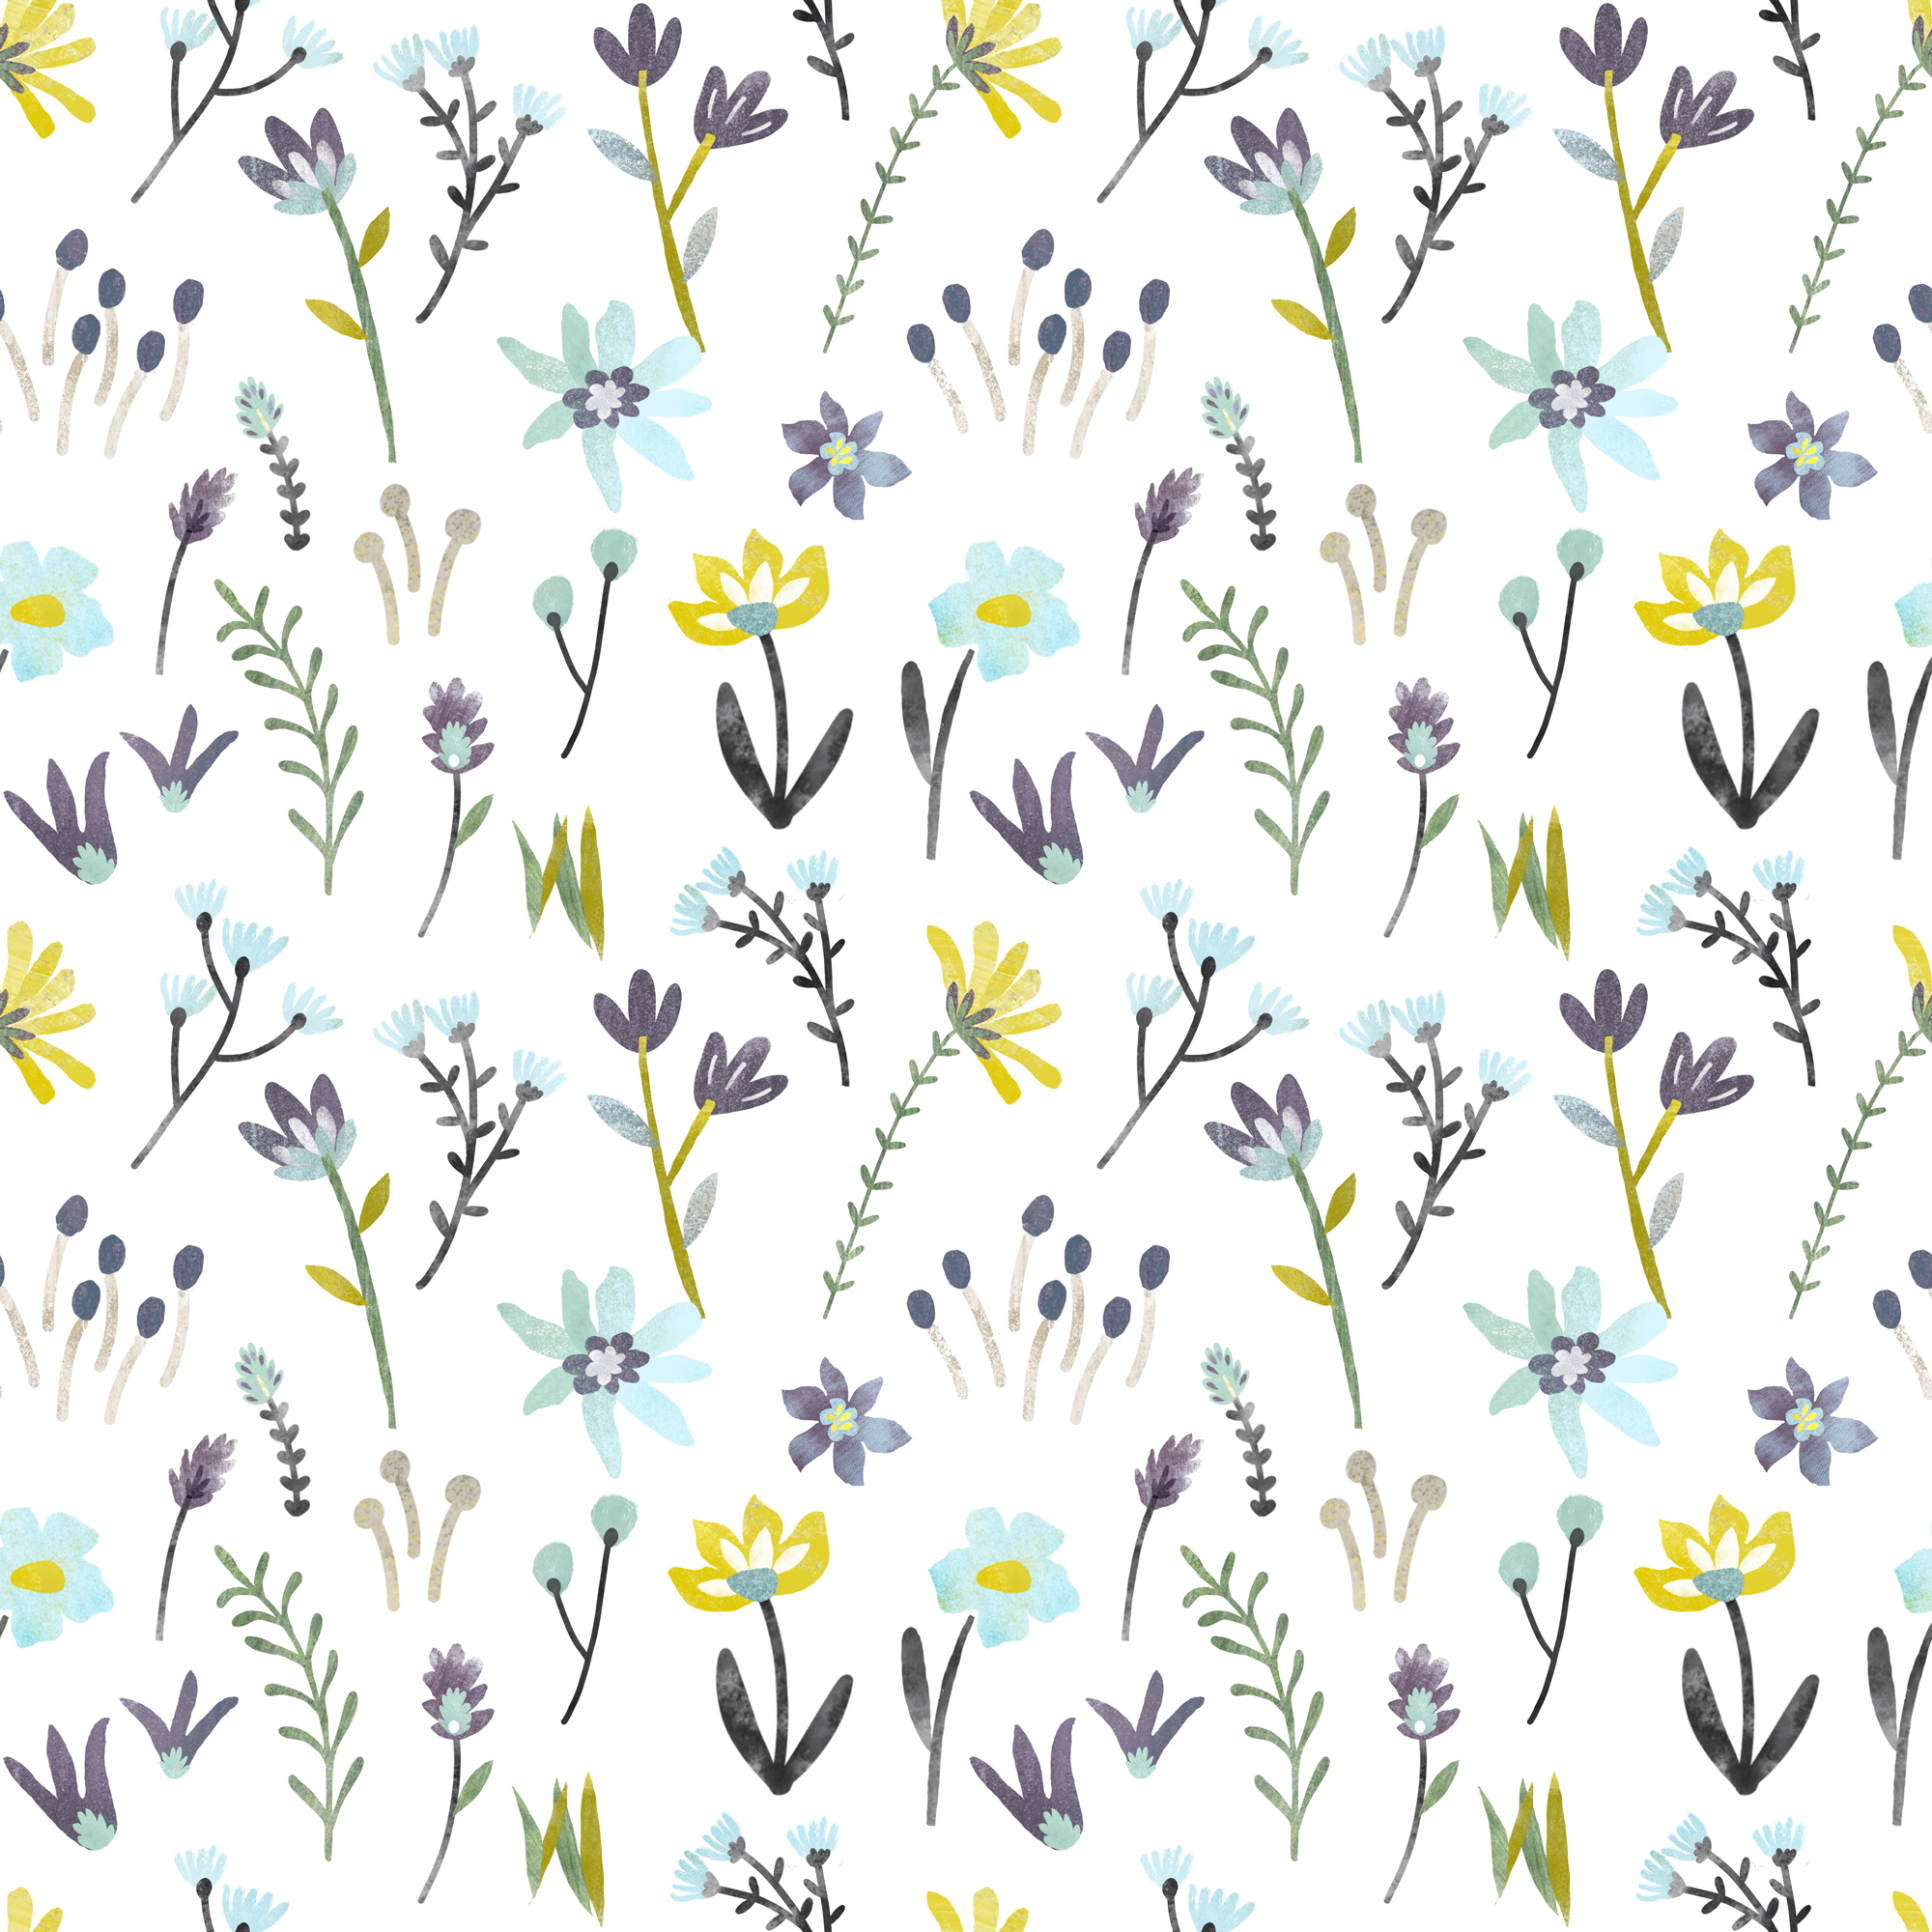 purple-blue-flower-pattern.jpg